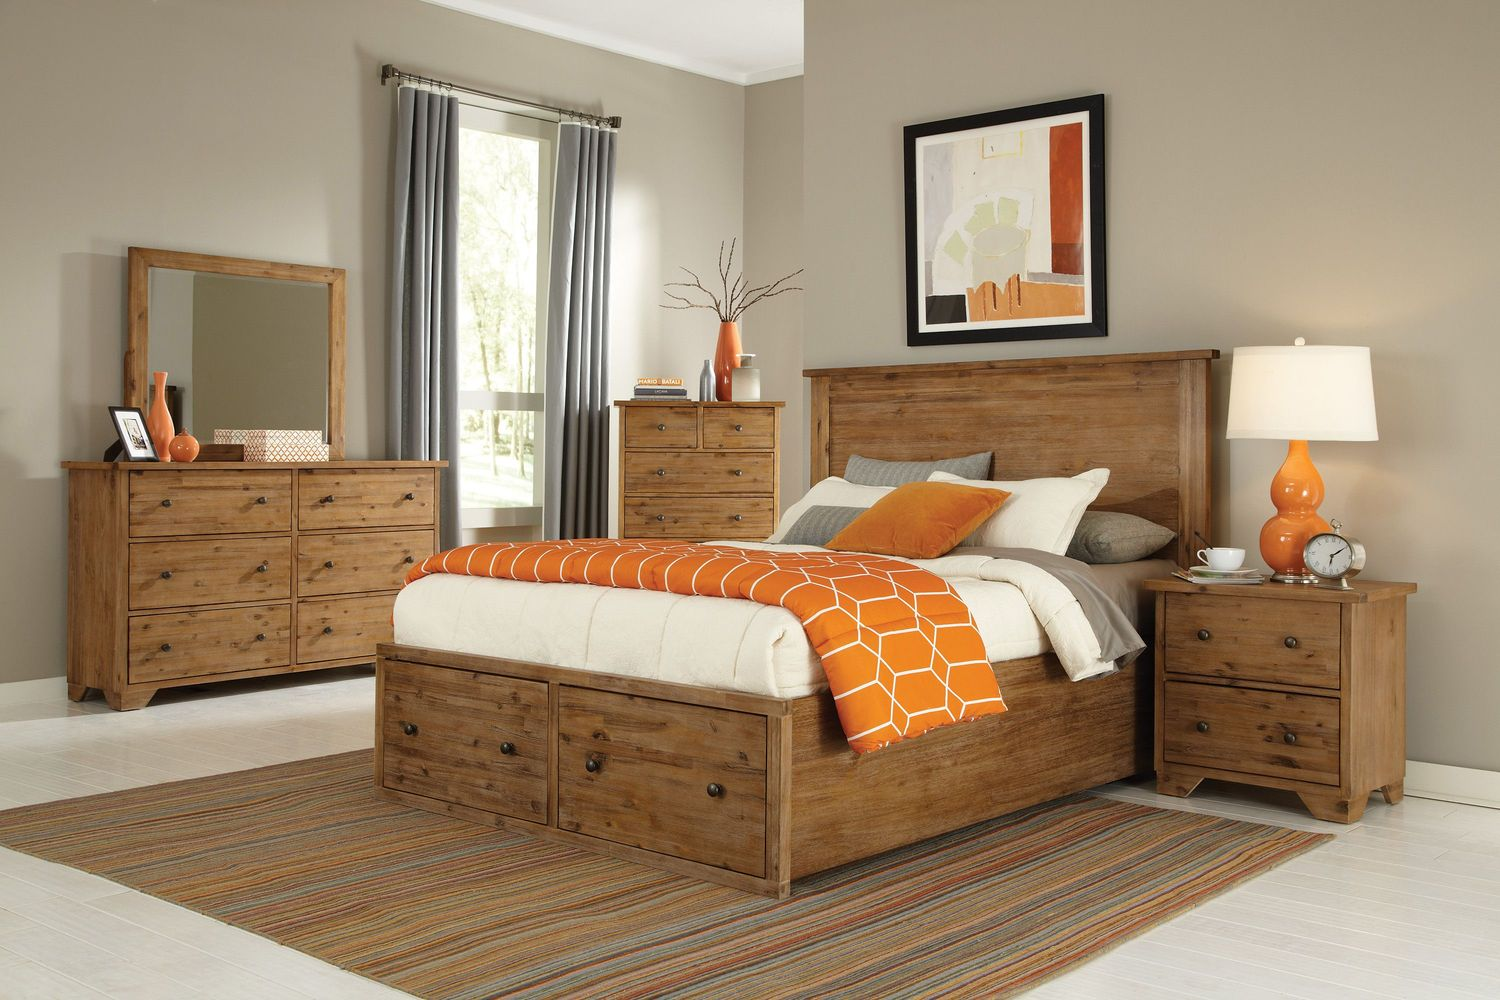 Annabella 4-Piece Queen Storage Bedroom Set - Brushed Acacia